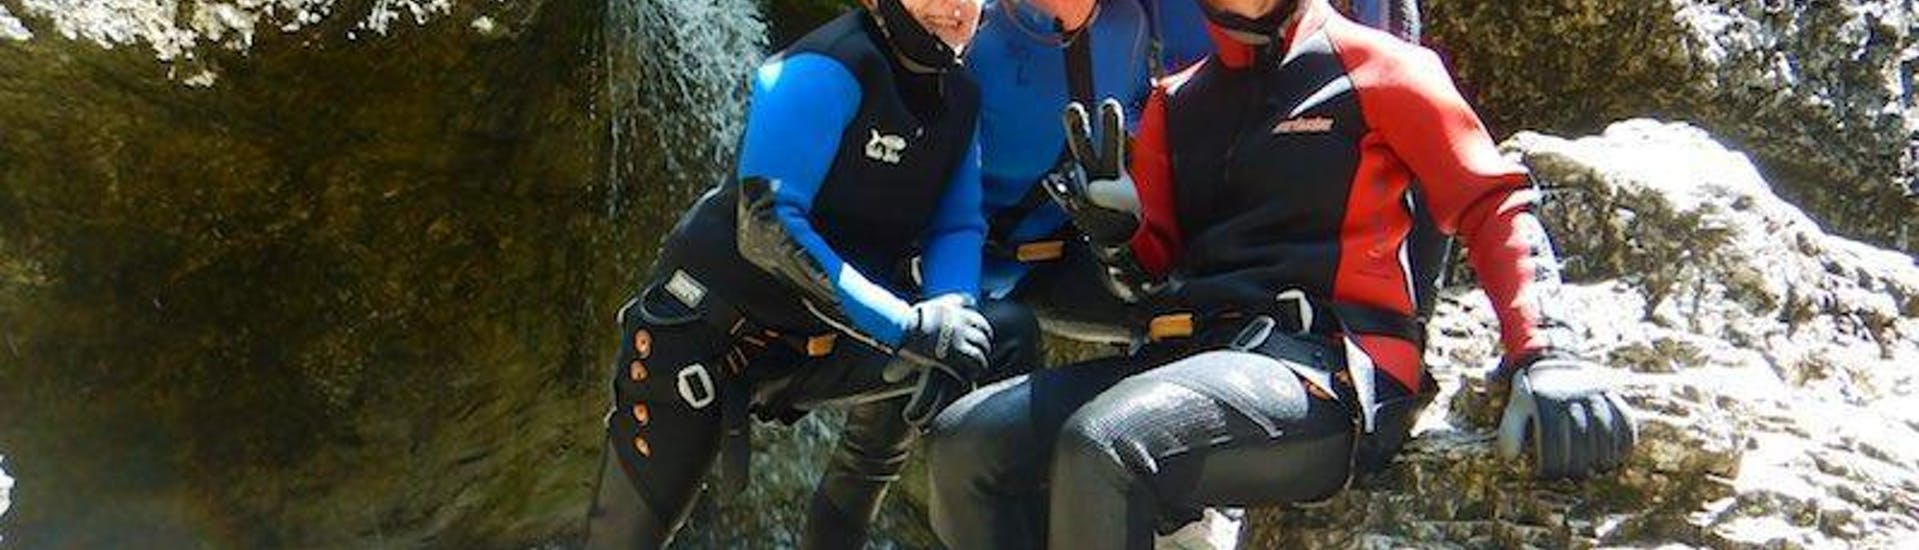 Canyoning in the Almbachklamm - Fun Tour